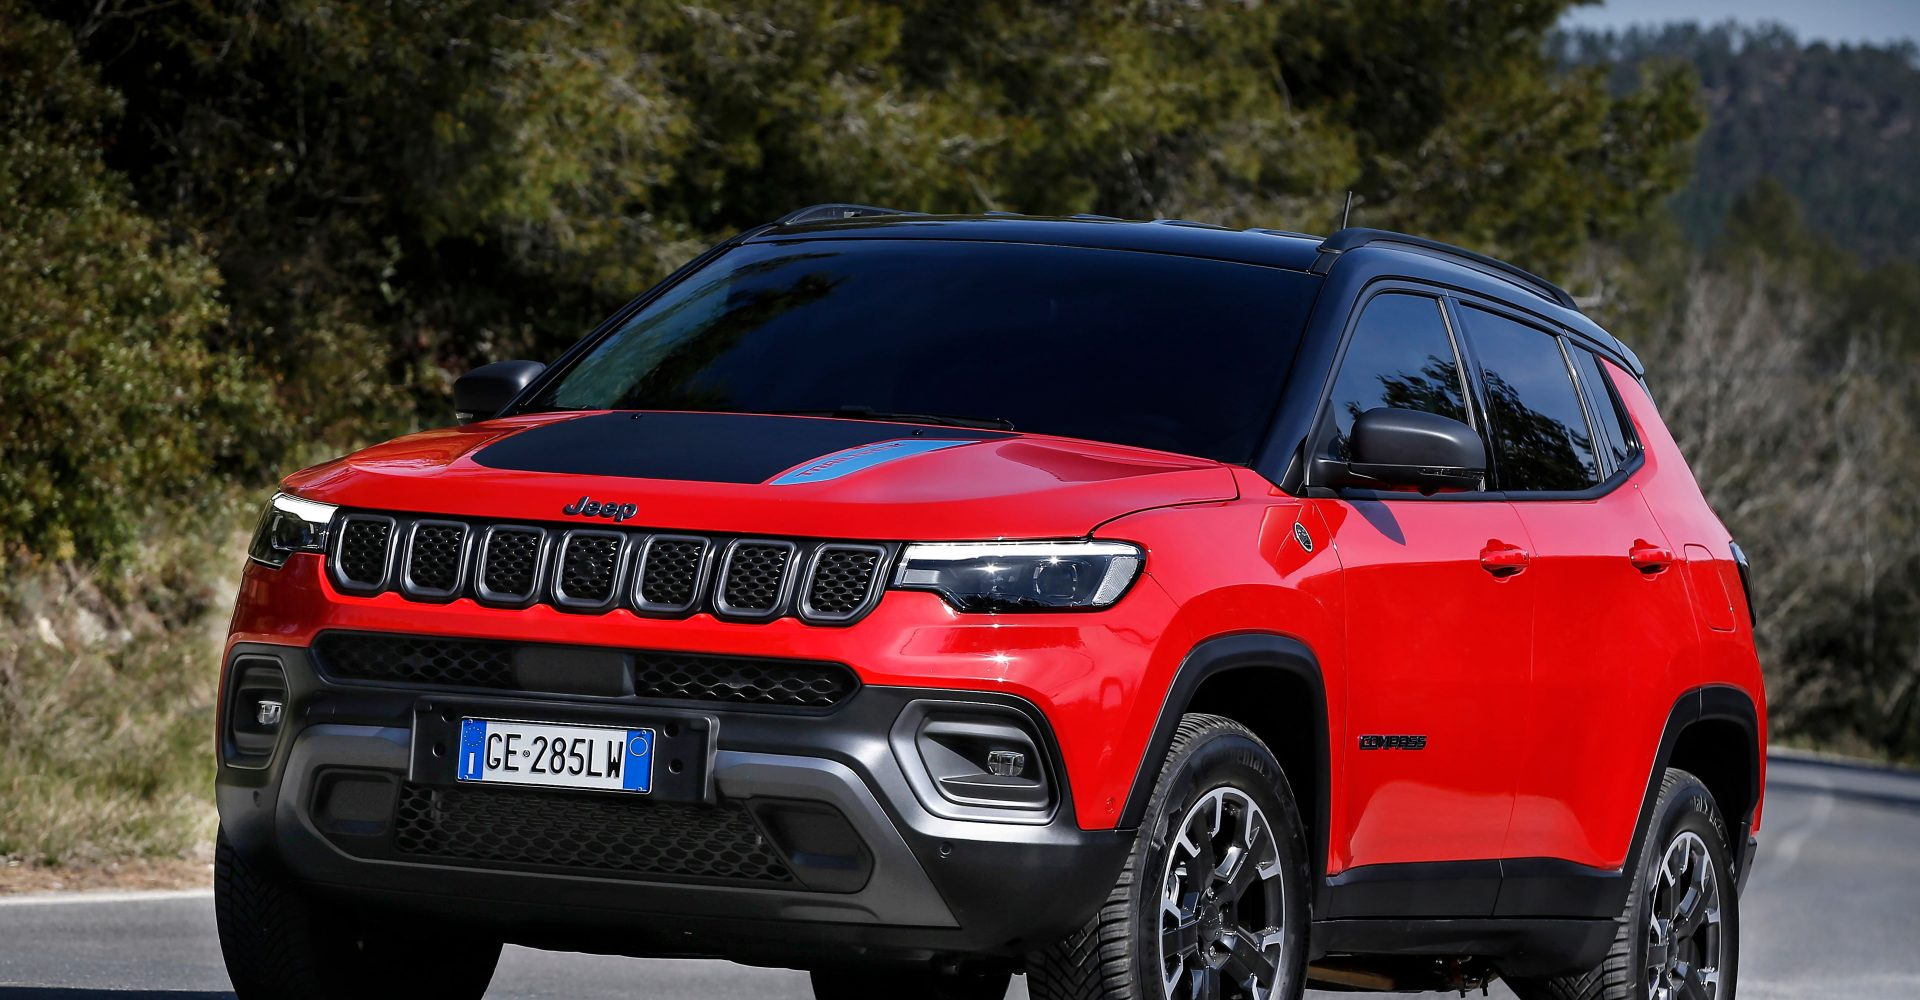 New Jeep Compass brings design upgrades and plug-in hybrid options